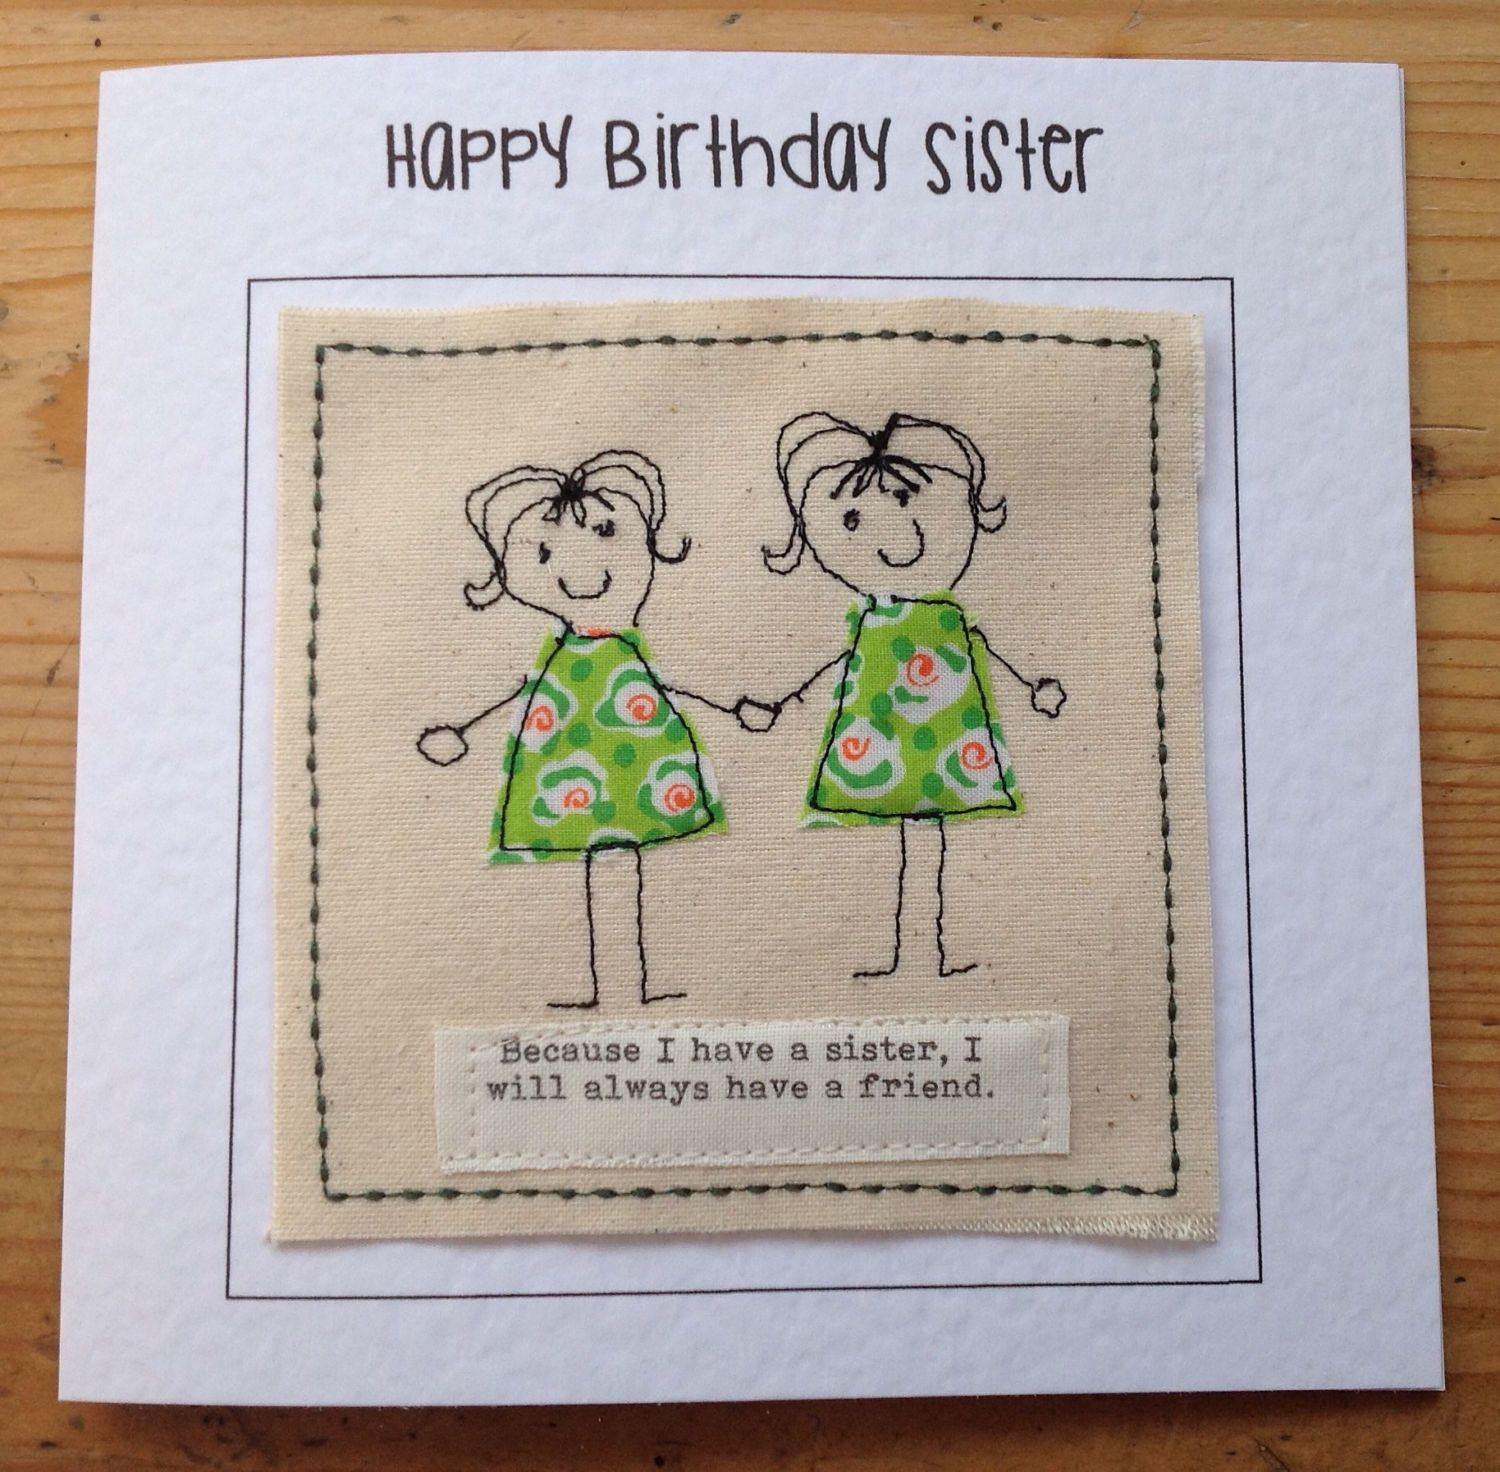 Handmade birthday card for sister with special quote twin sister handmade birthday card for sister with special quote twin sister birthday sister get well sister thank bookmarktalkfo Gallery